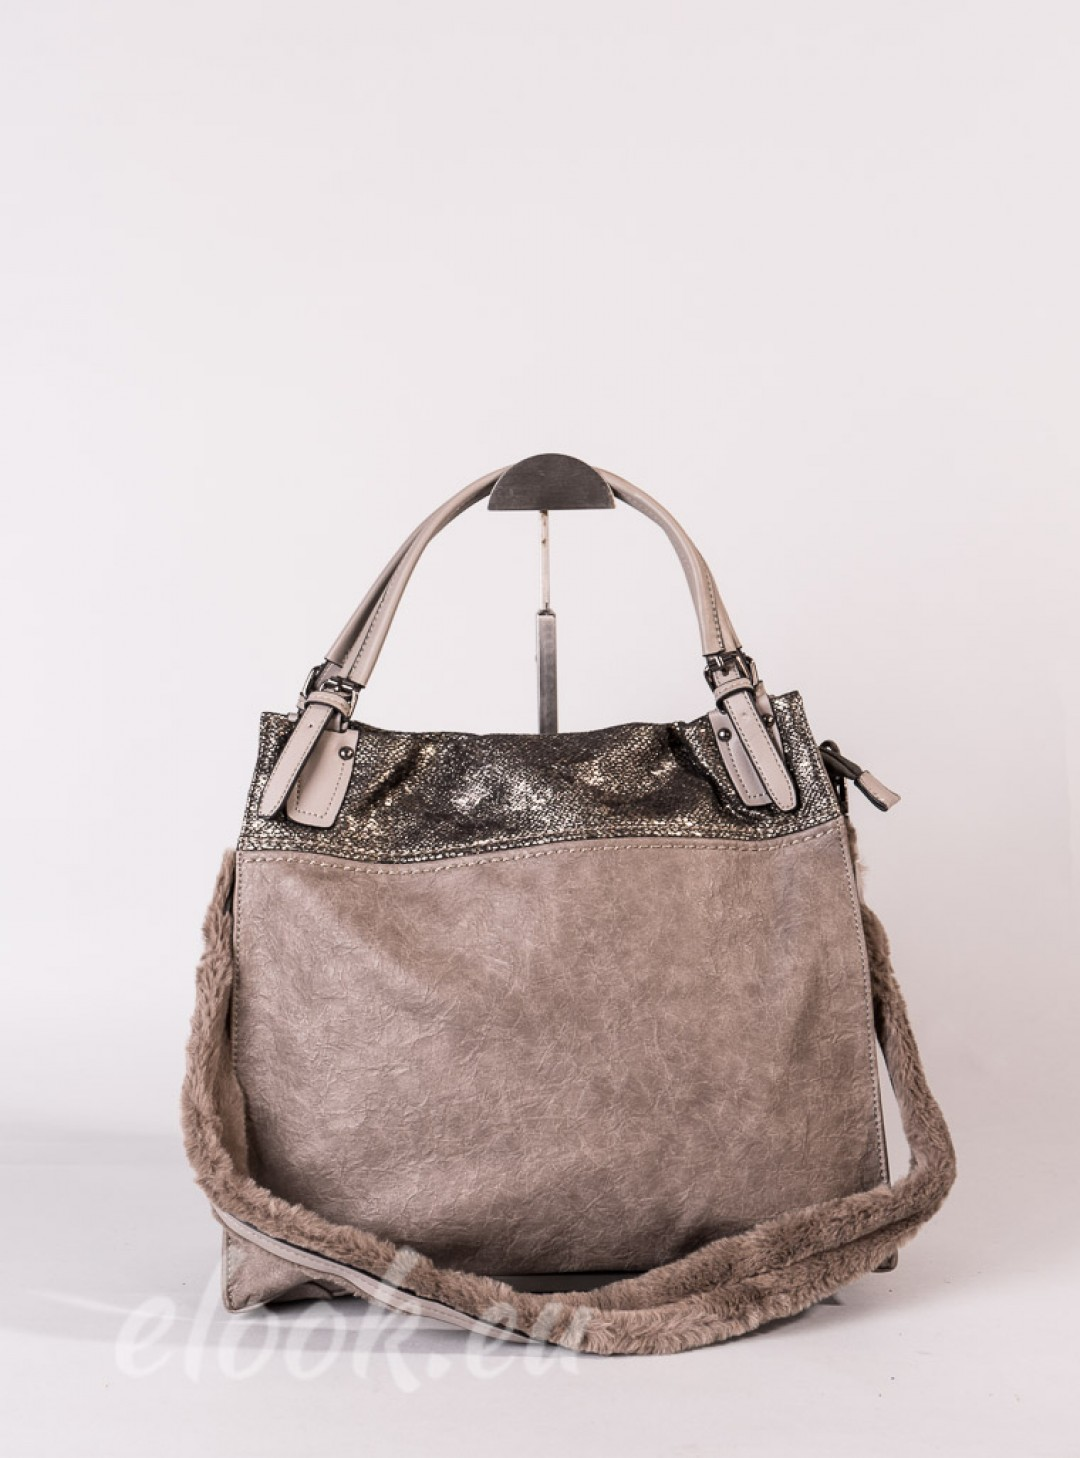 Bag in 2 colors and a padded shoulder strap